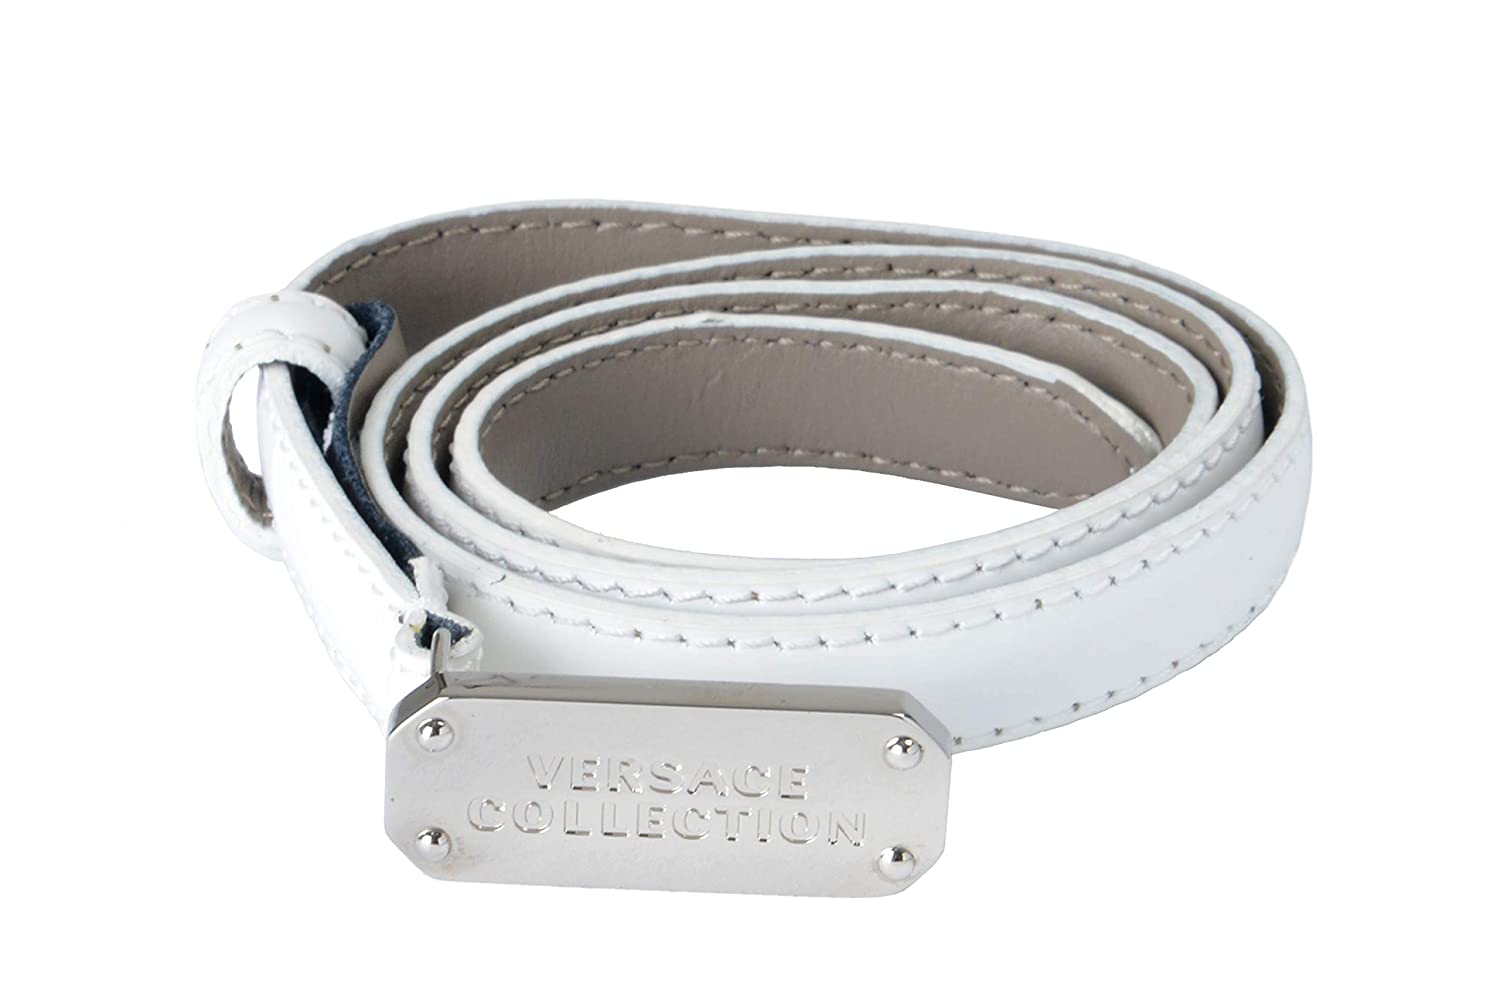 Versace Collection 100% Leather White Women's Belt US 65 IT 80